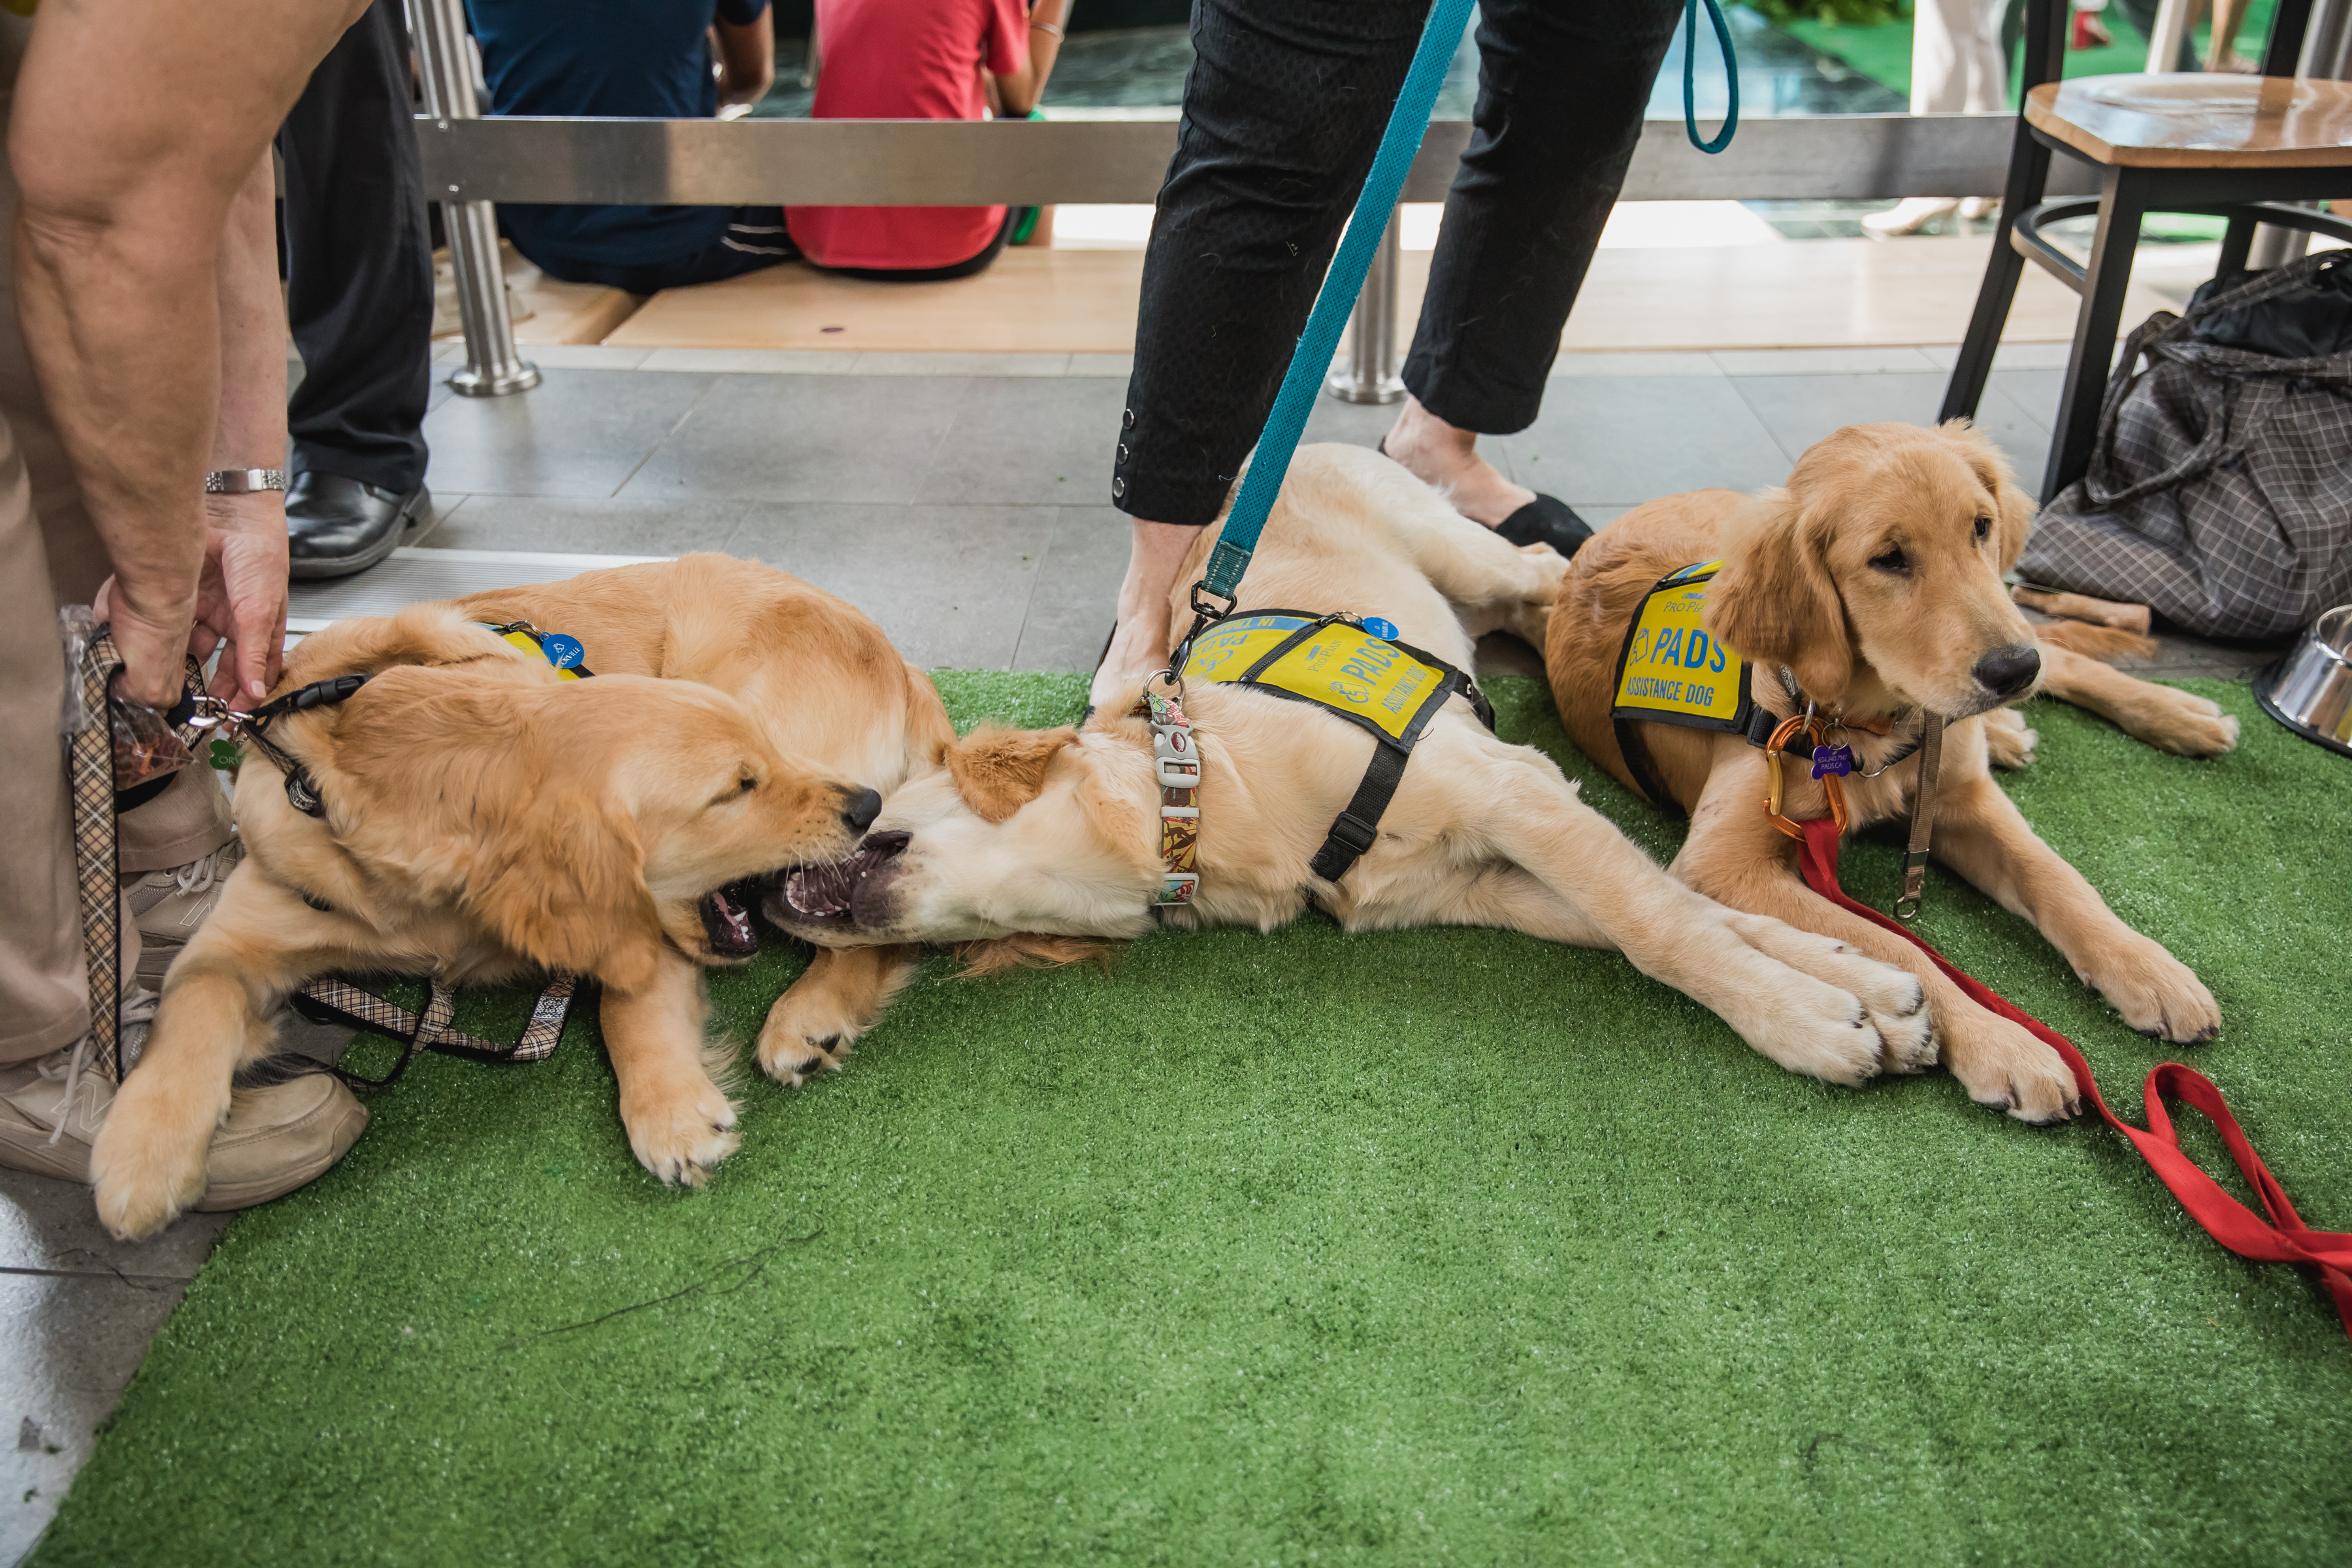 Amelia, Wilbur and Orville, YVR's sponsored PADS Dogs came back to YVR to say hello to their airport friends